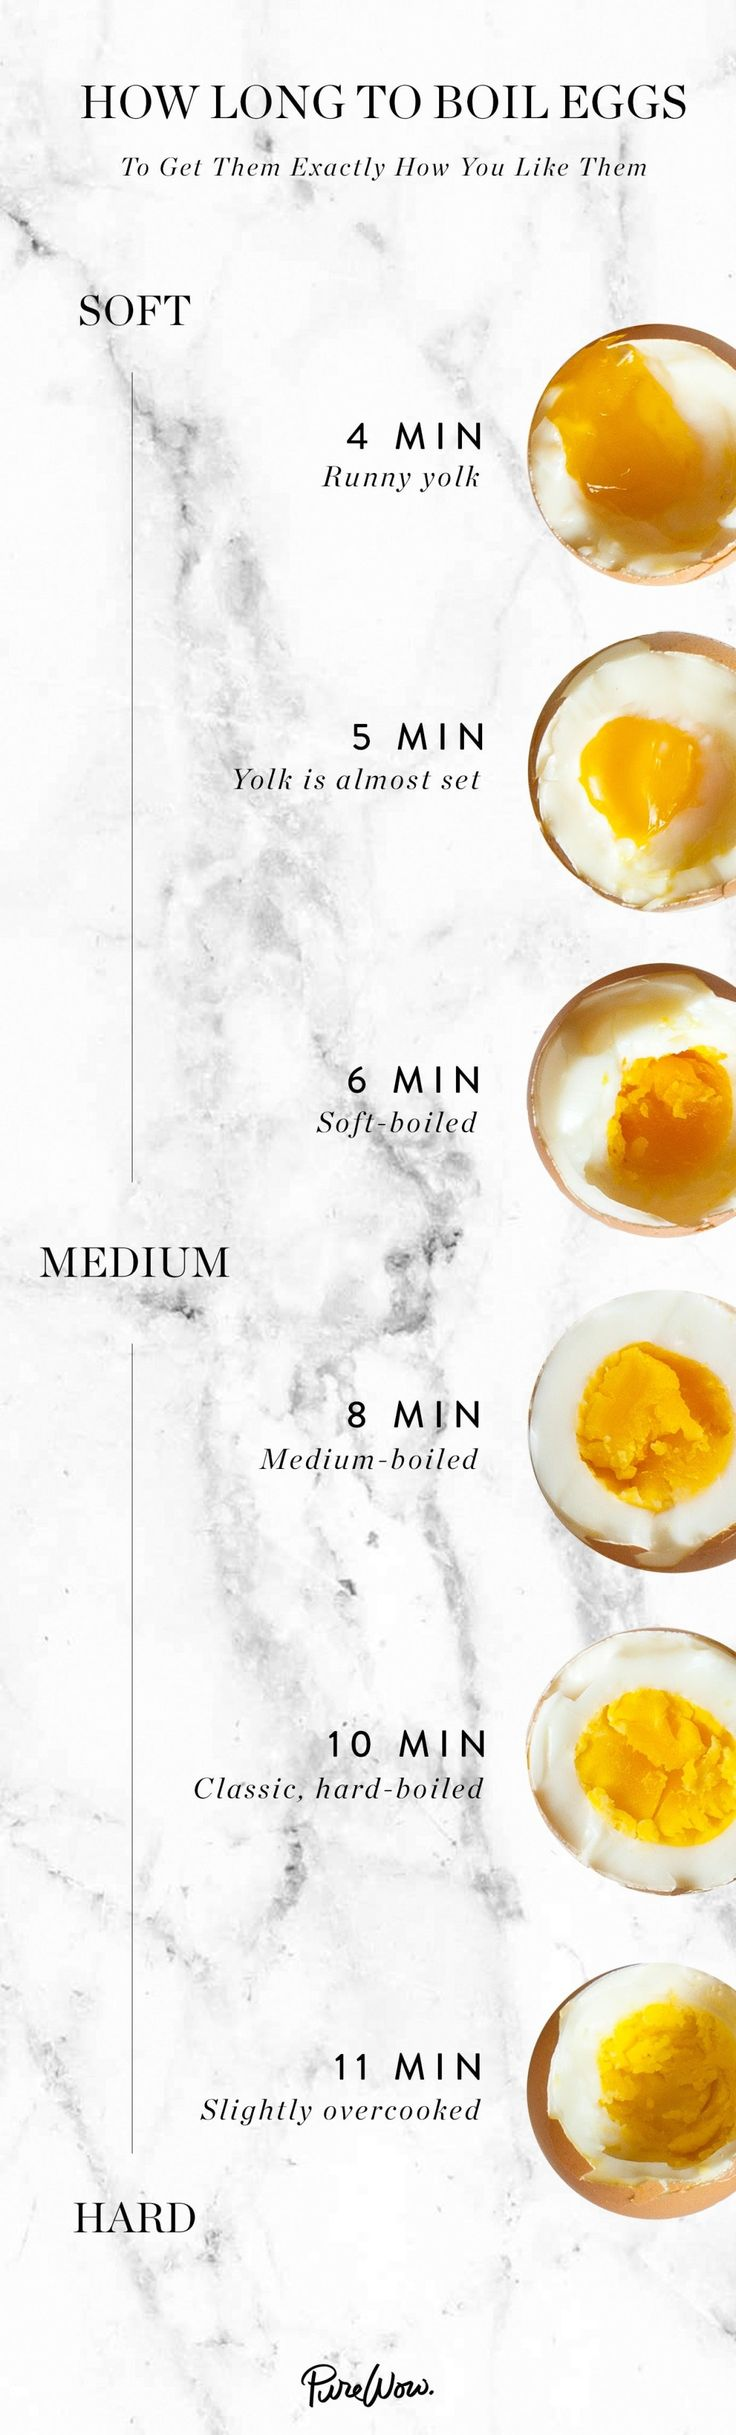 The Minutebyminute Guide To Boiling Eggs